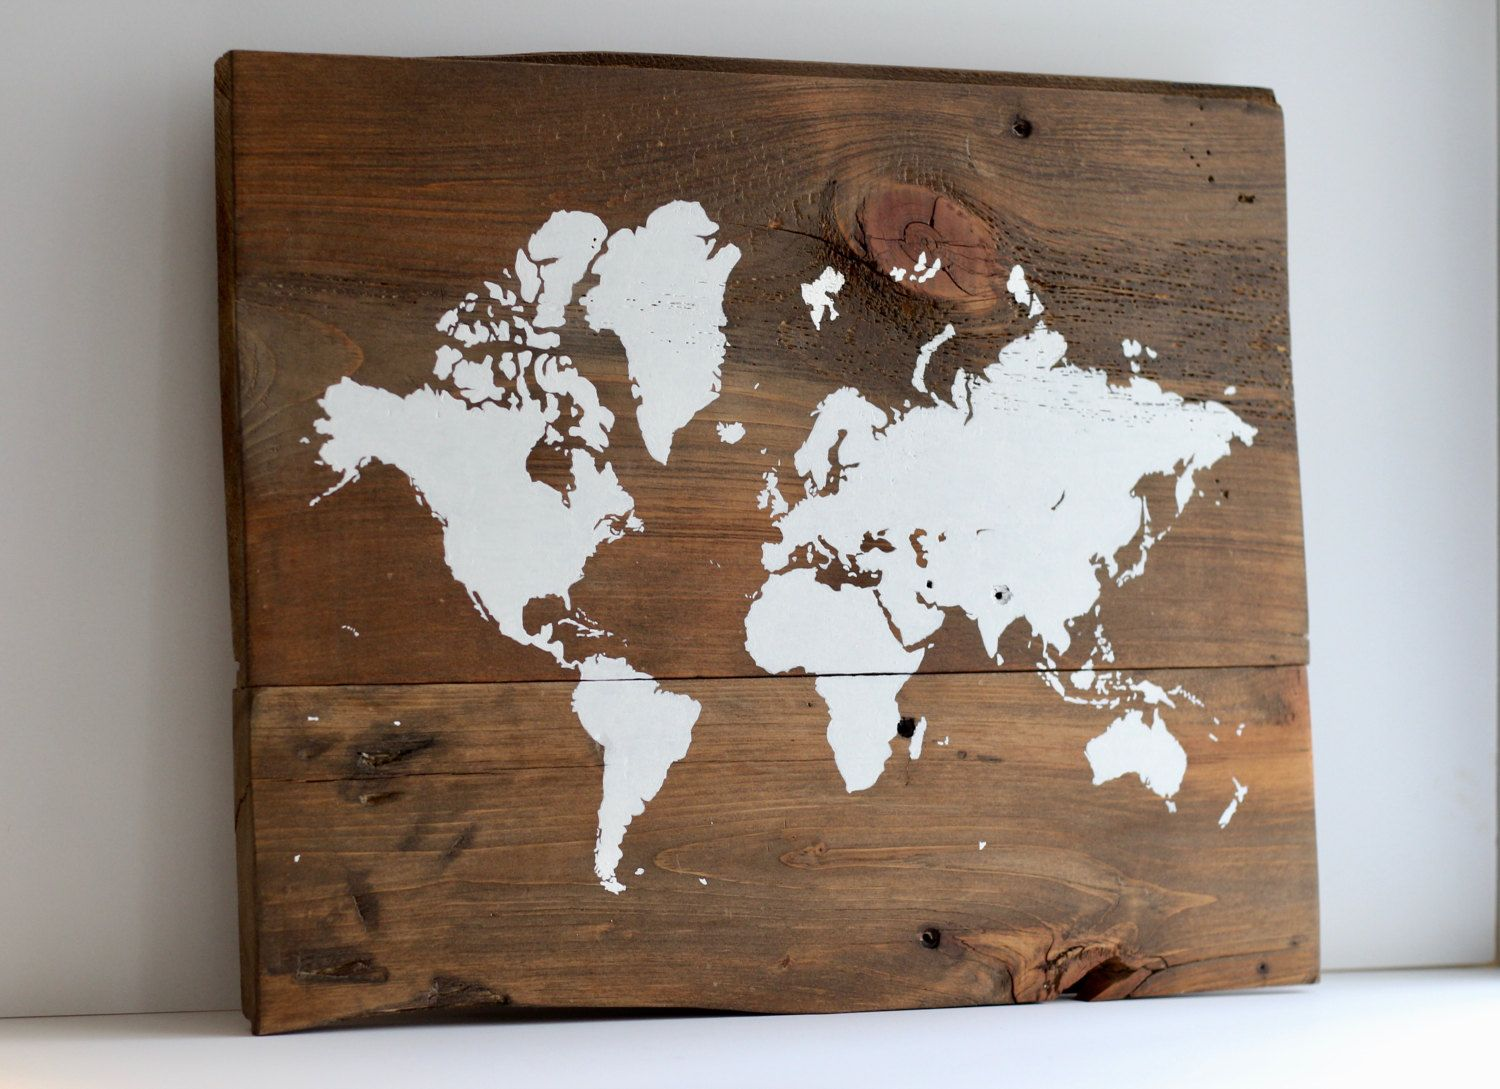 Handmade item by tealbluestudio on etsy world map on wood rustic handmade item by tealbluestudio on etsy world map on wood rustic wall decor gumiabroncs Image collections